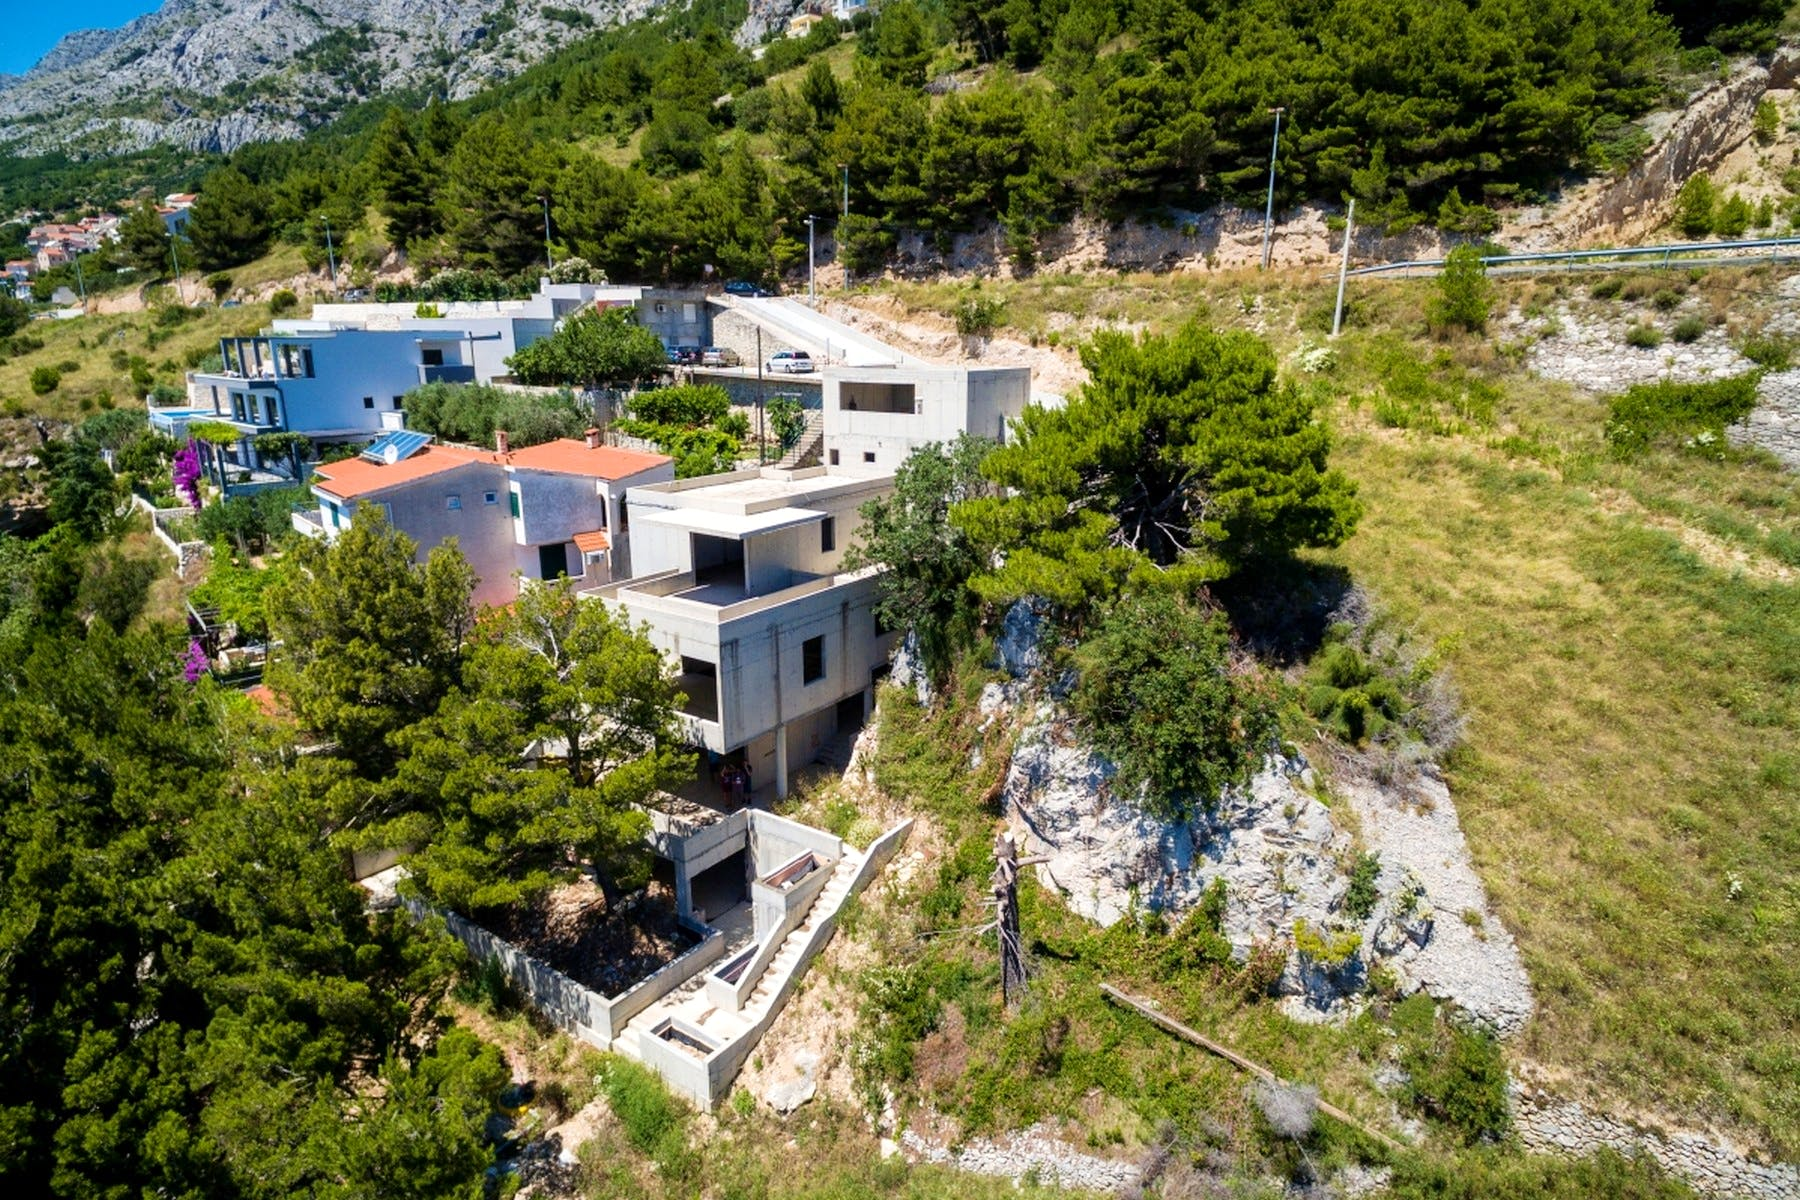 Villa for sale in roh bau stage of construction